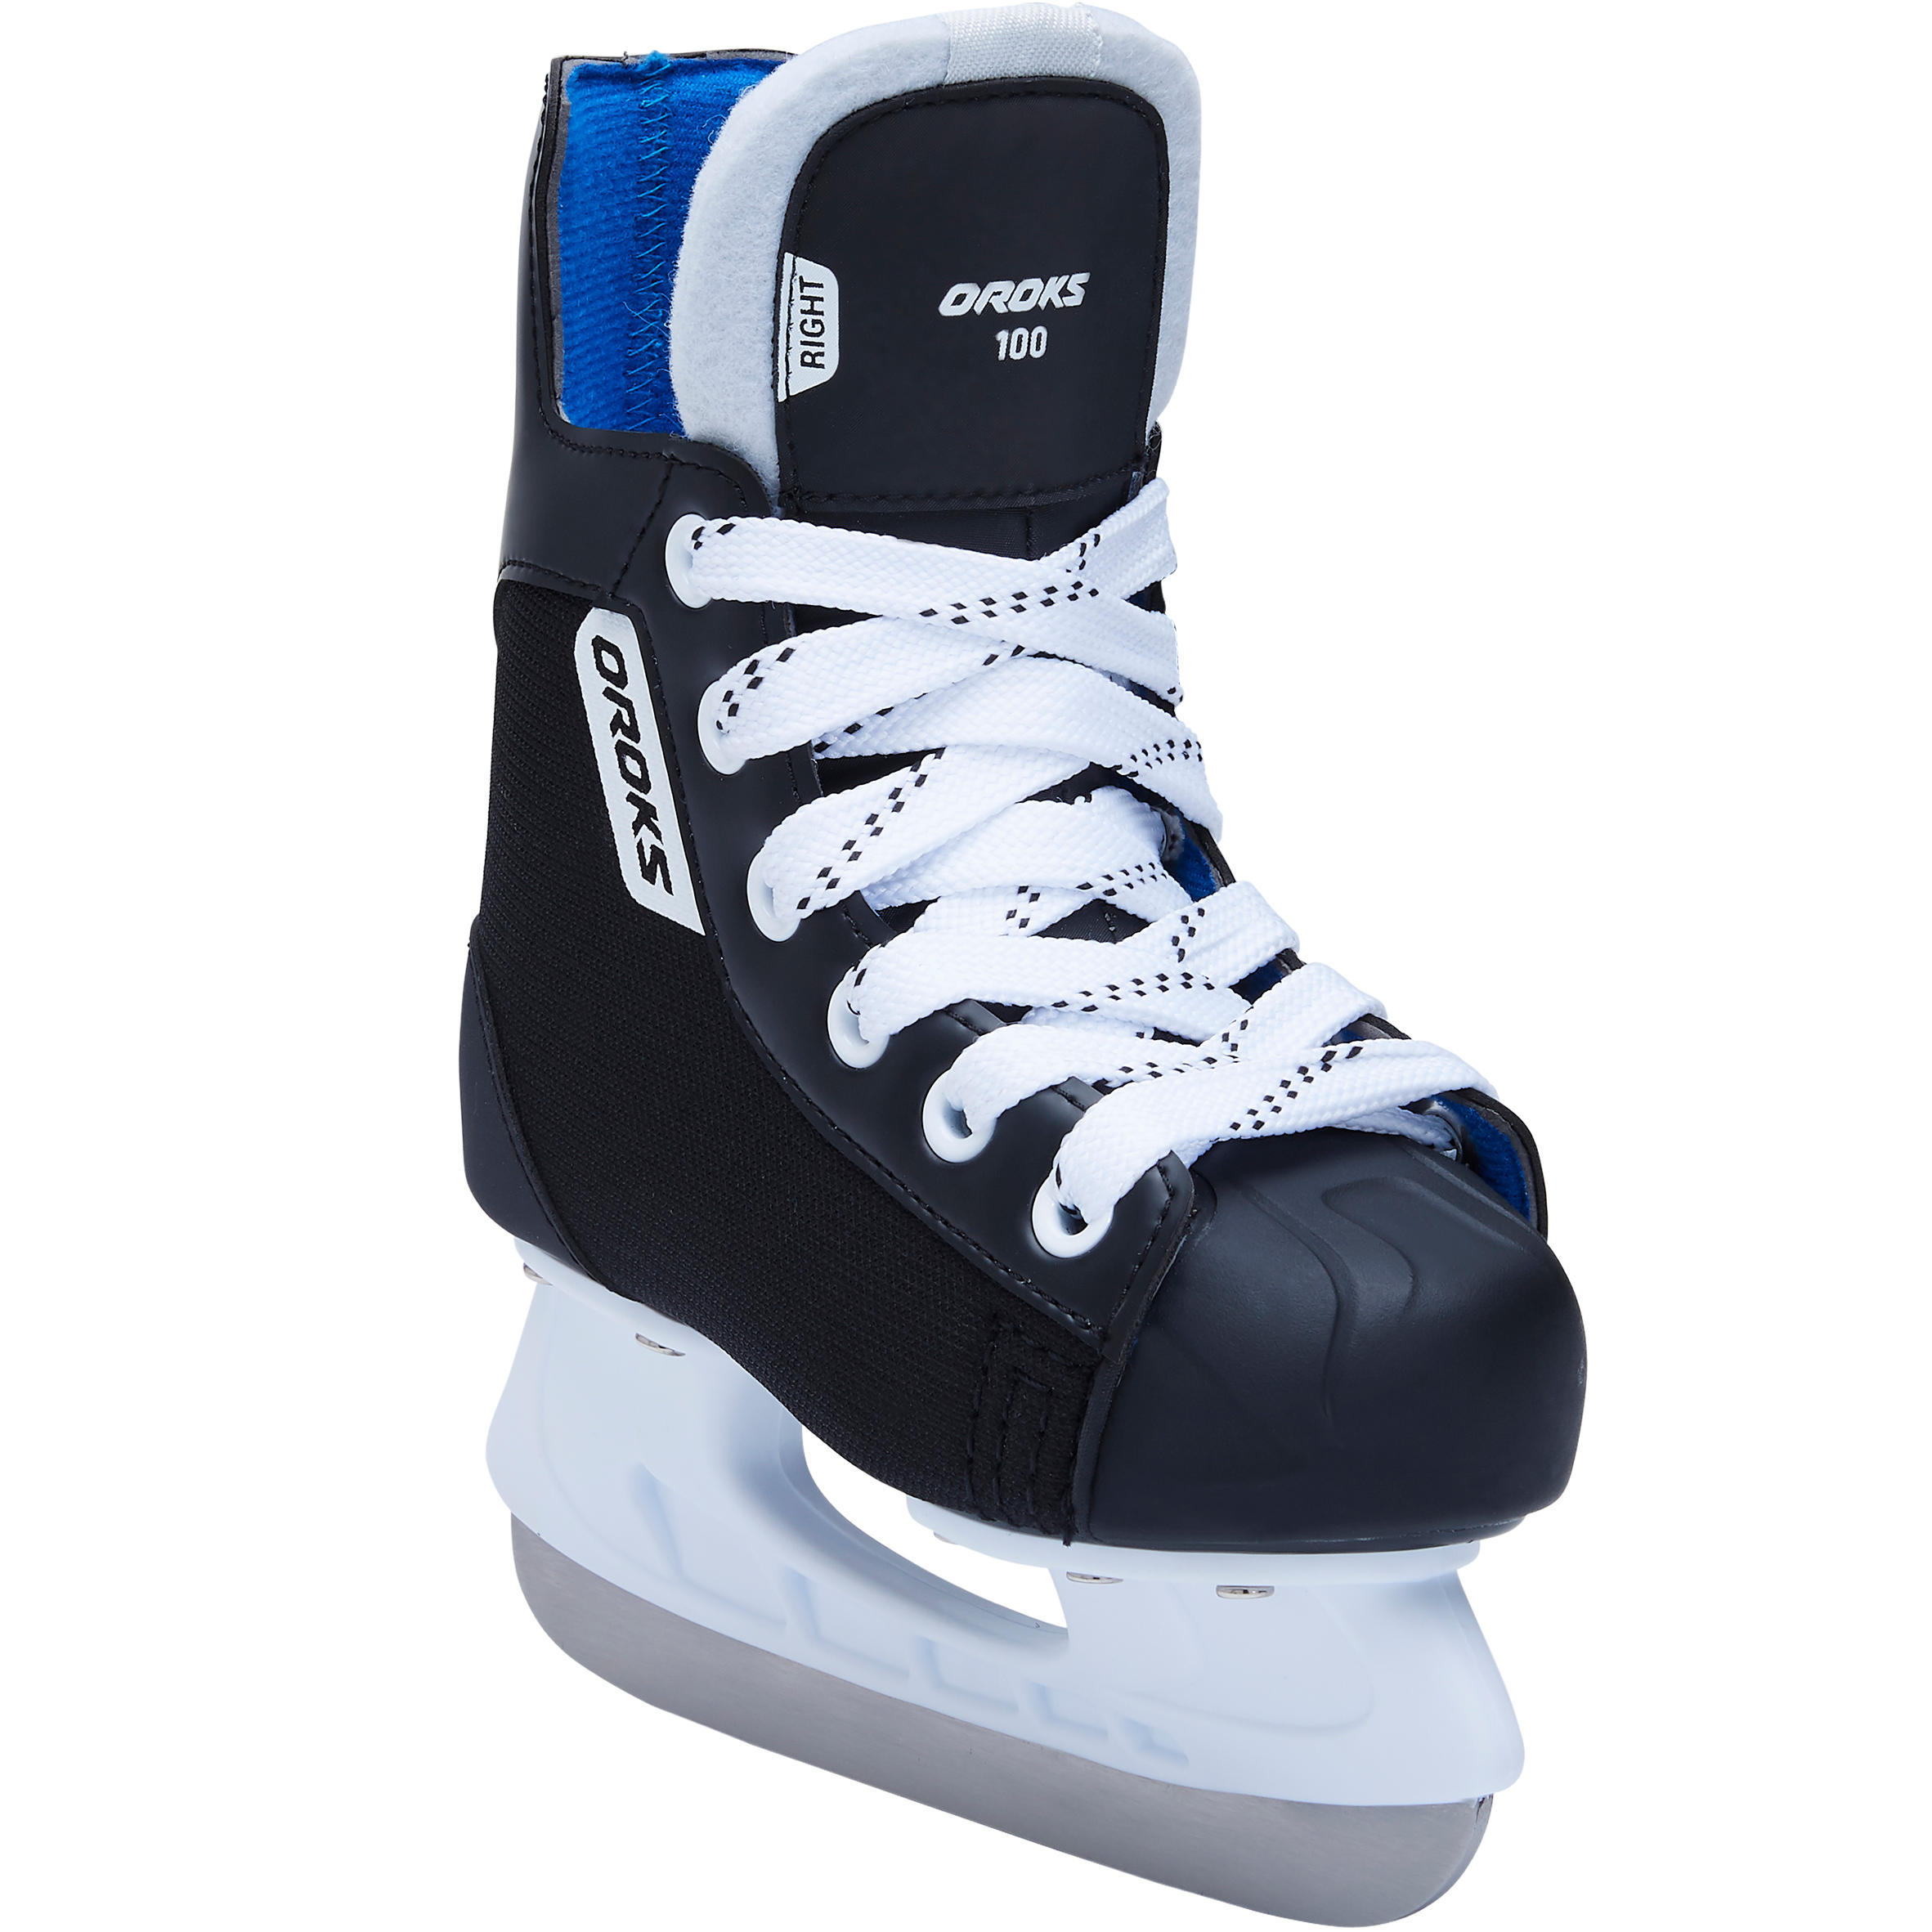 IHS100 JR Hockey Skates